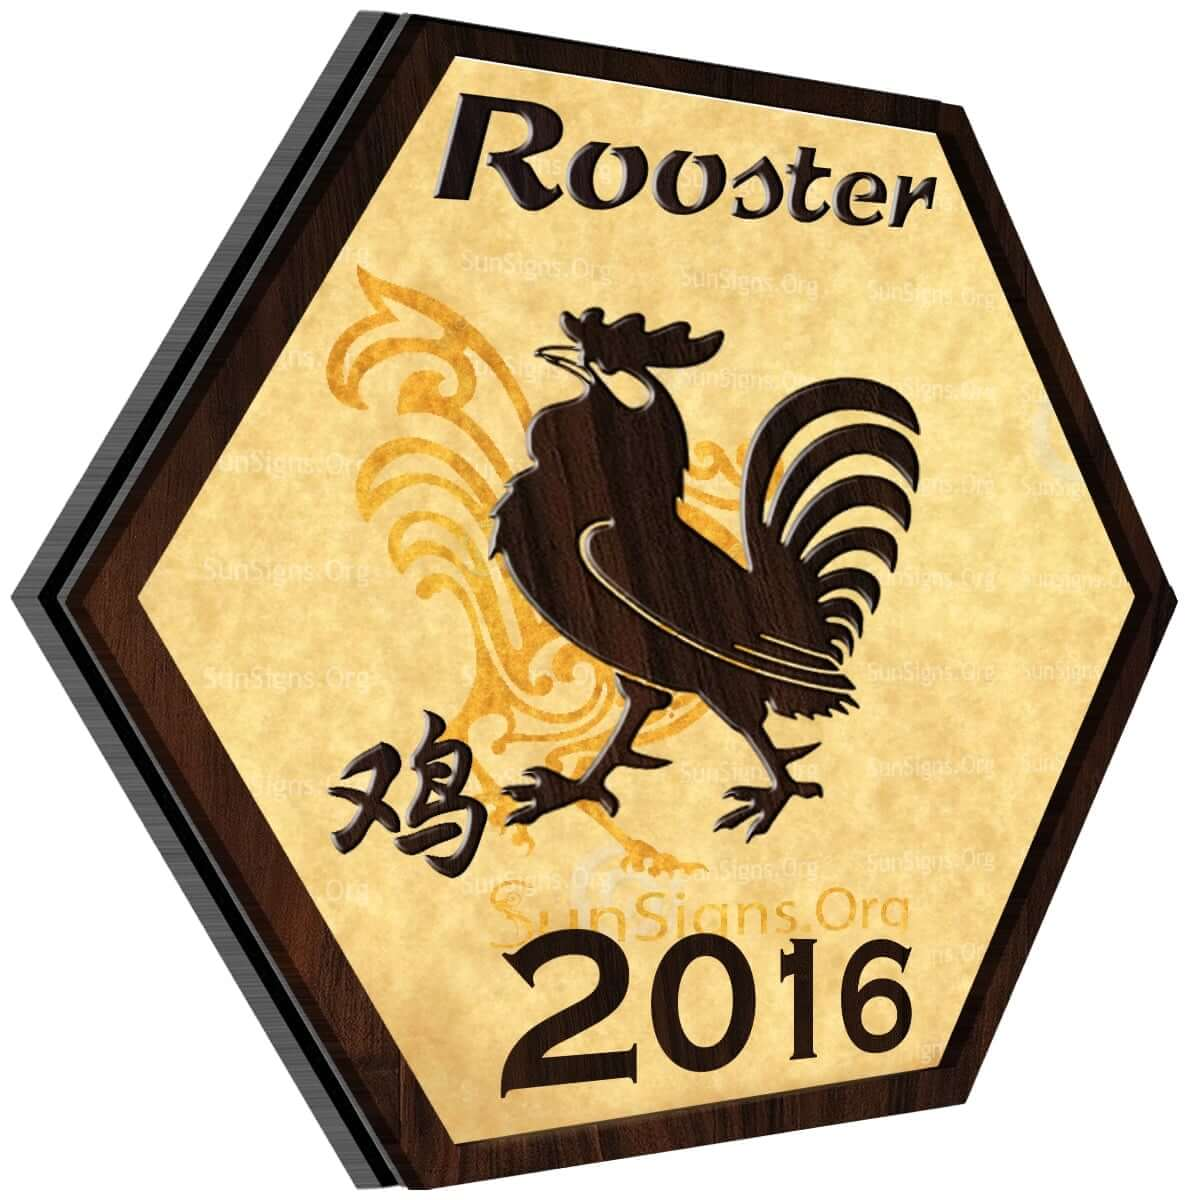 Rooster Horoscope 2016 Predictions For Love, Finance, Career, Health And Family